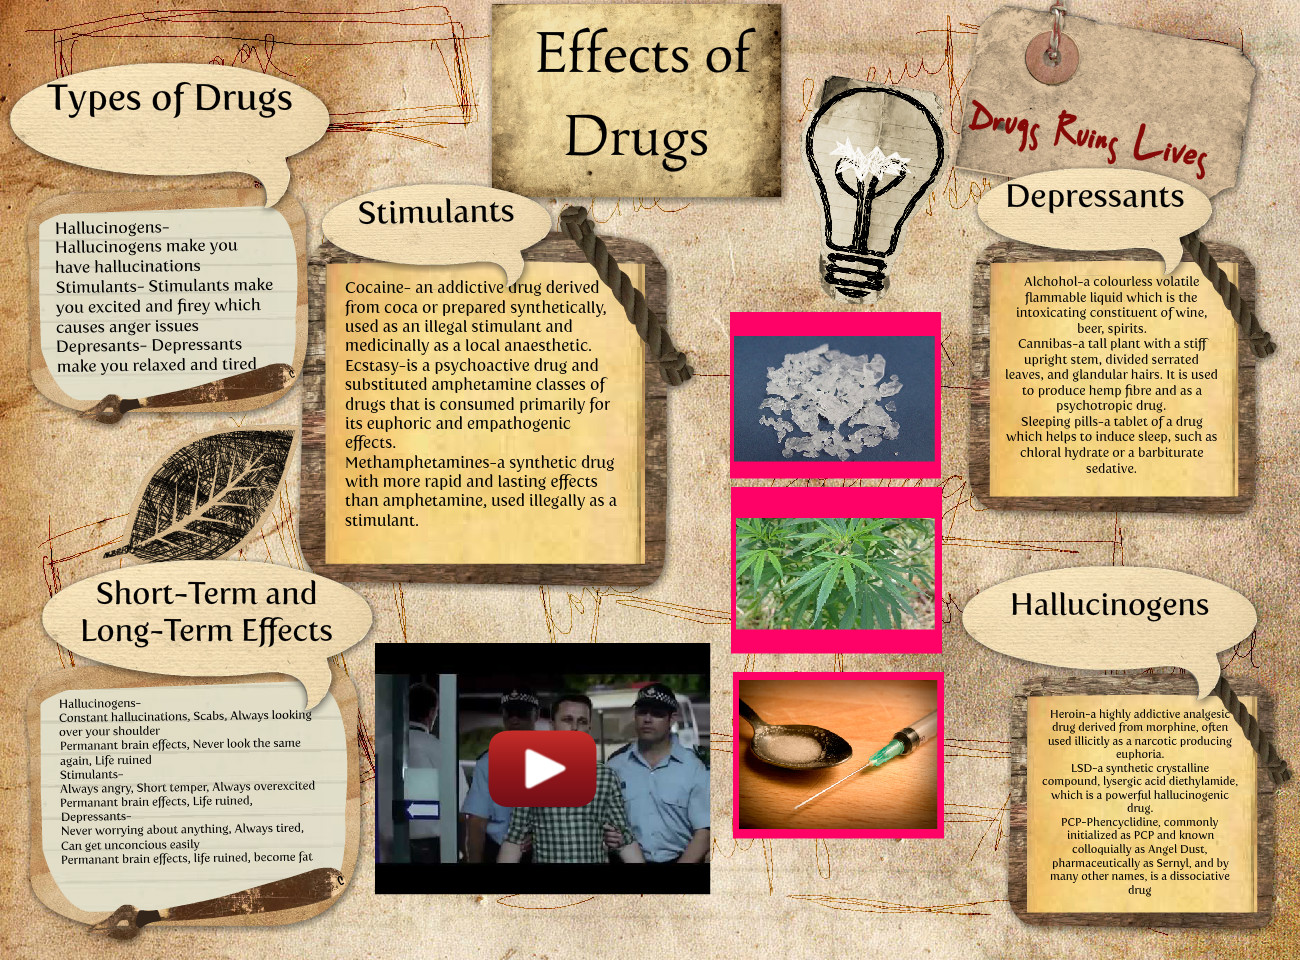 Effect of Drugs: alcohol, awareness, depressants, drug